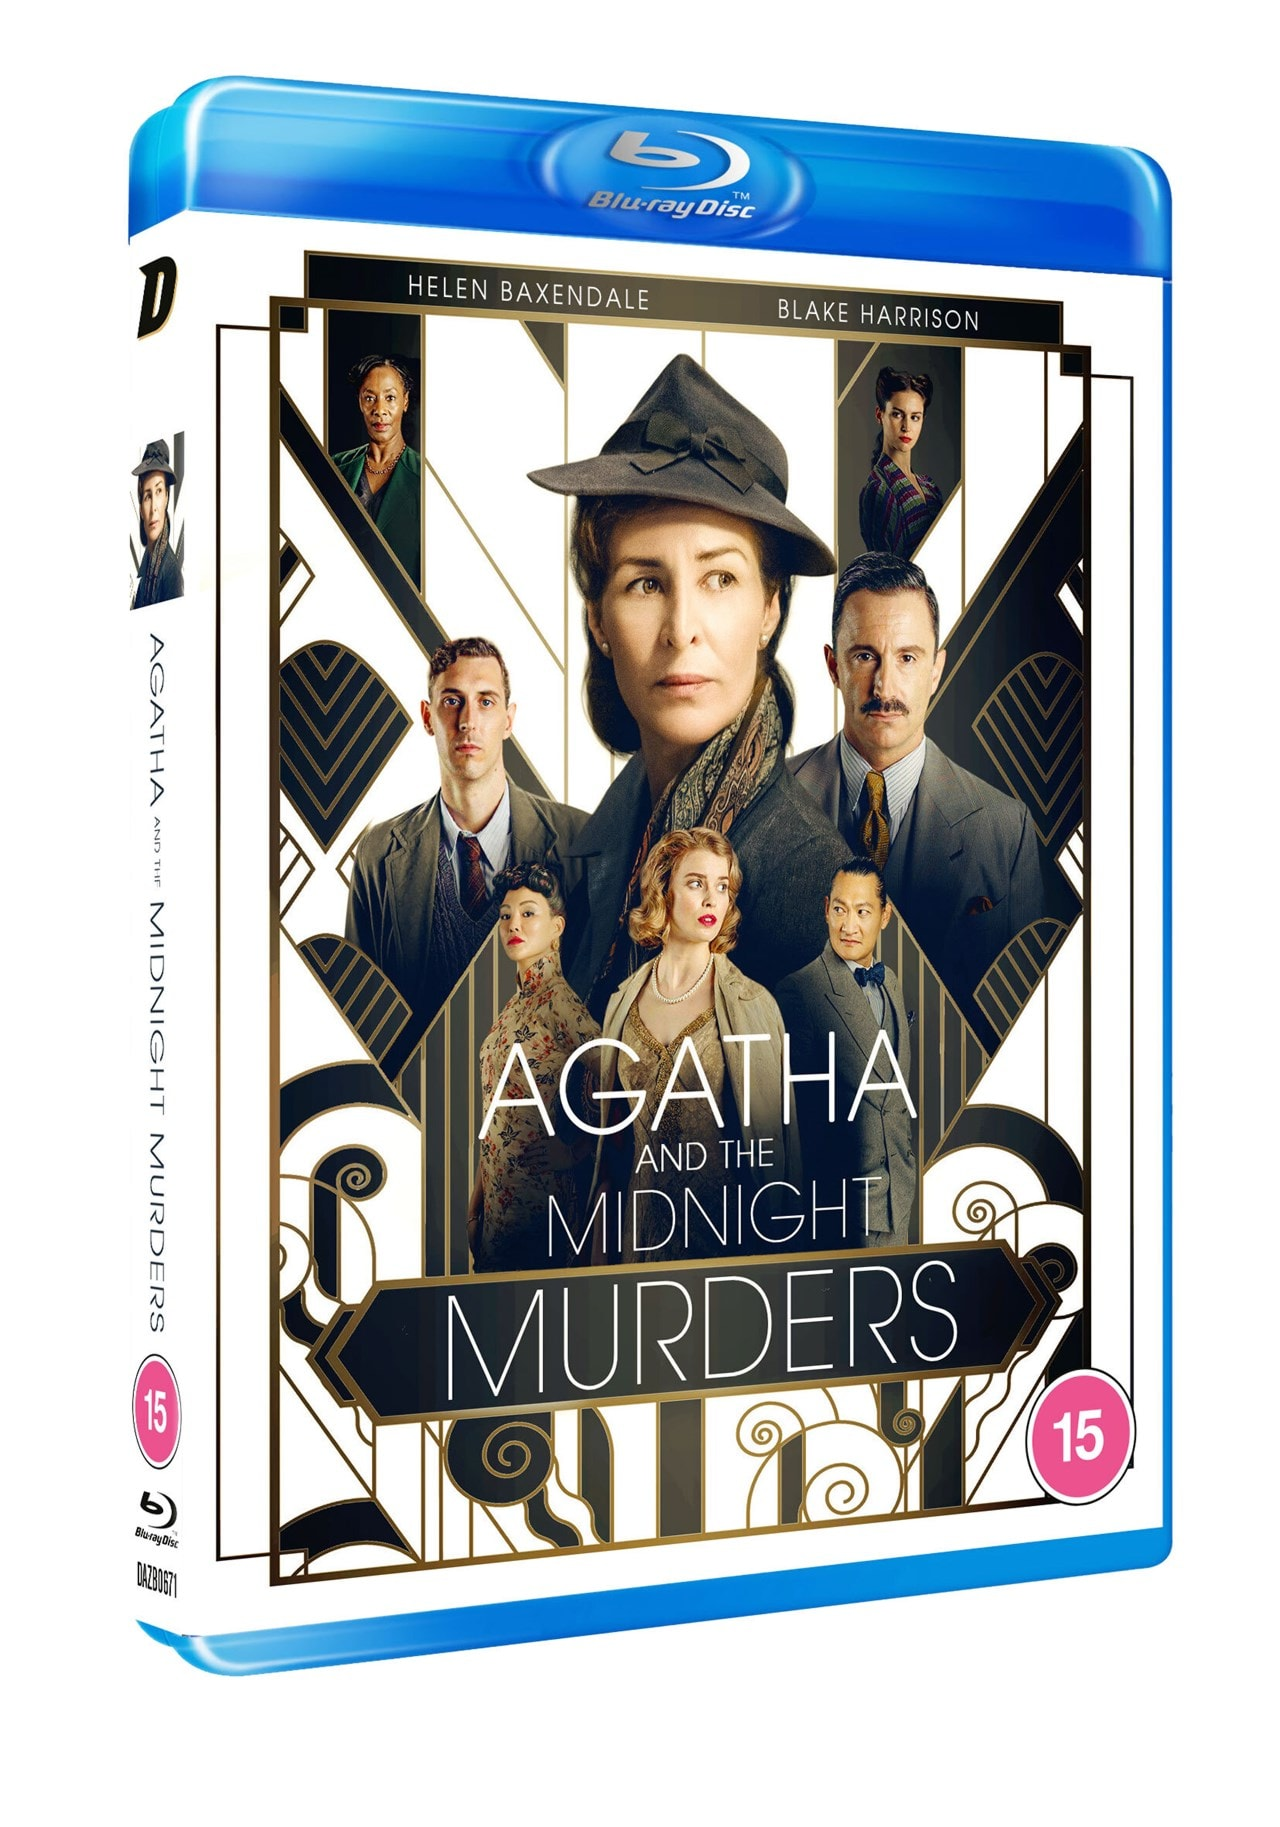 Agatha and the Midnight Murders - 2